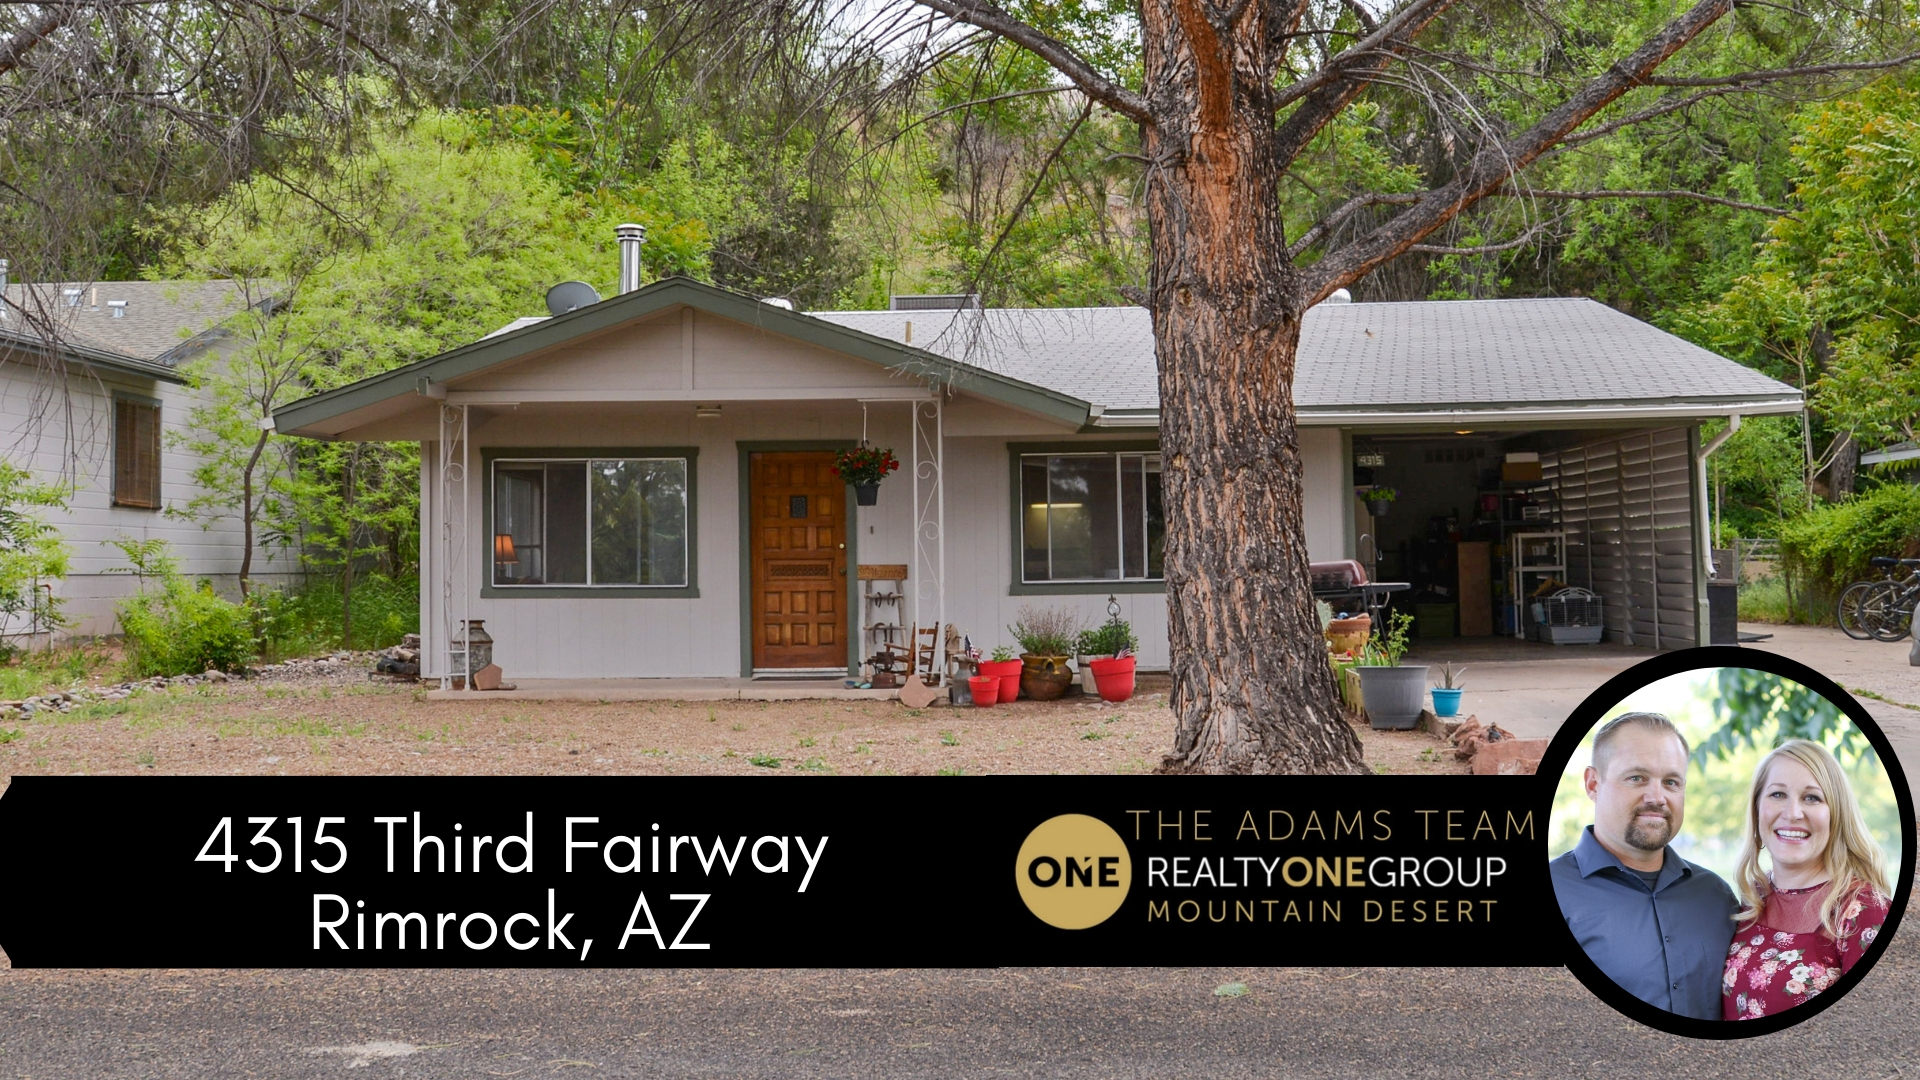 4315 Third Fairway Rimrock AZ 86335